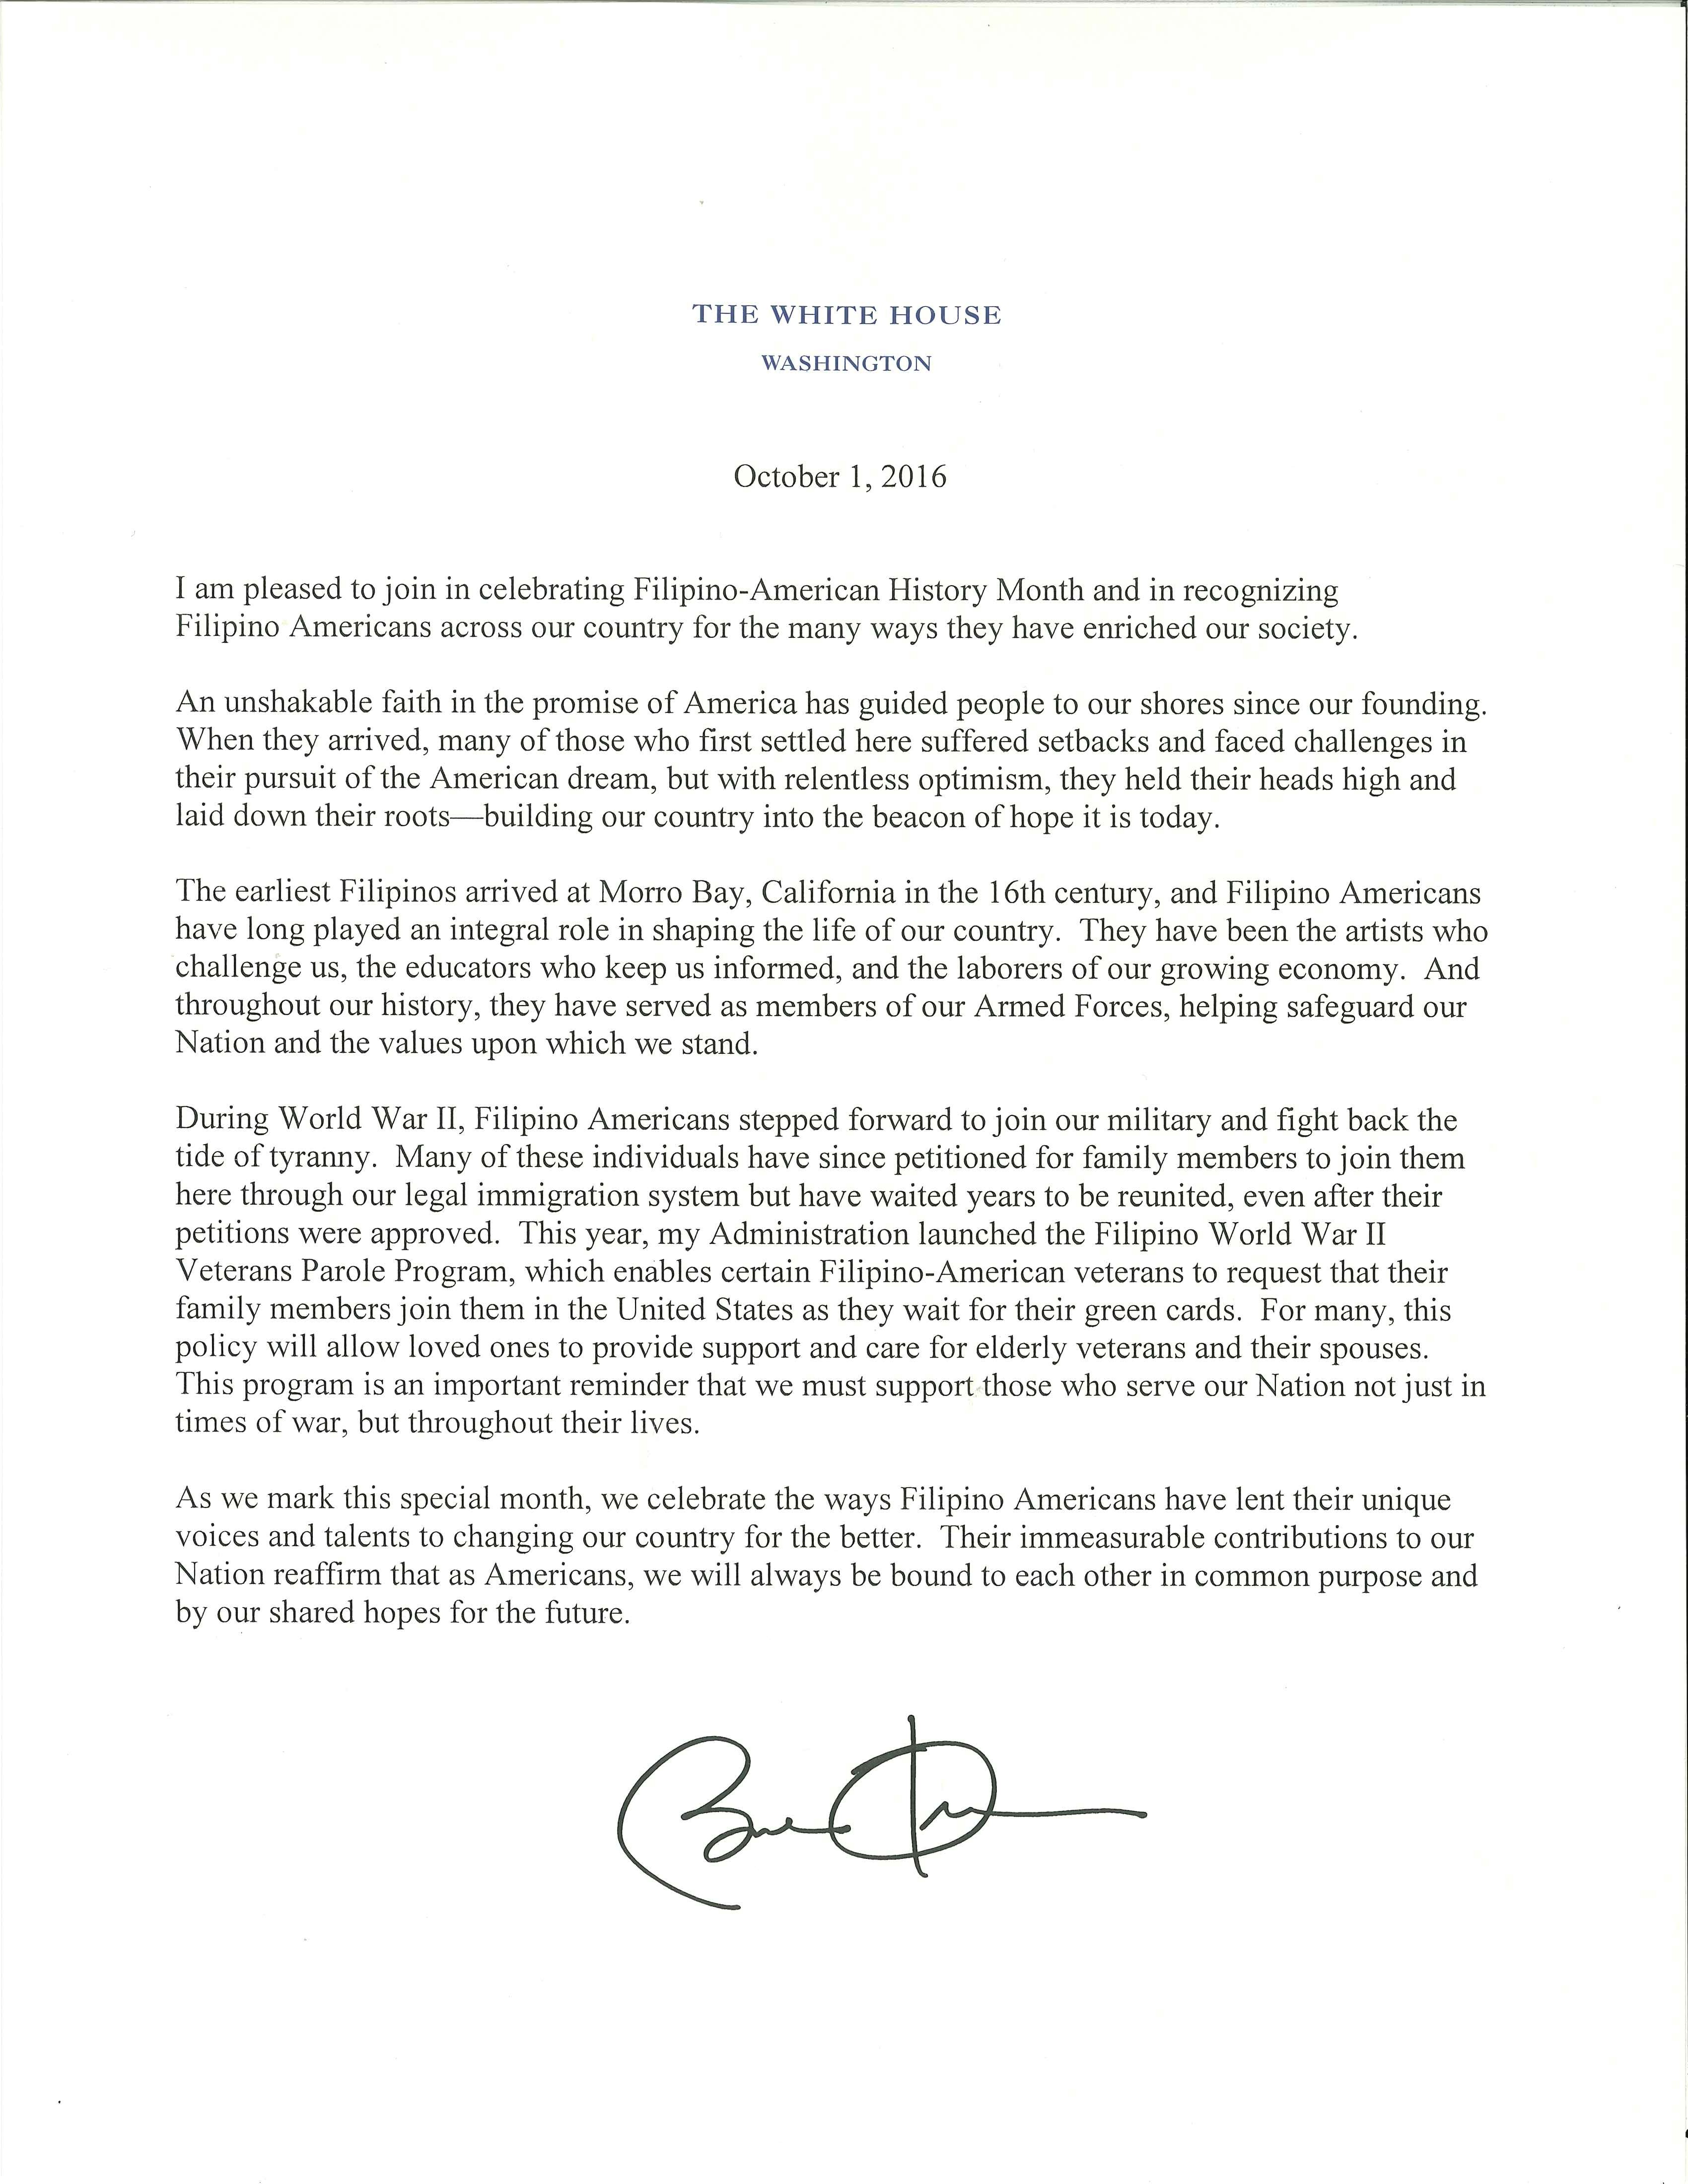 President's Message on Filpino American History Month